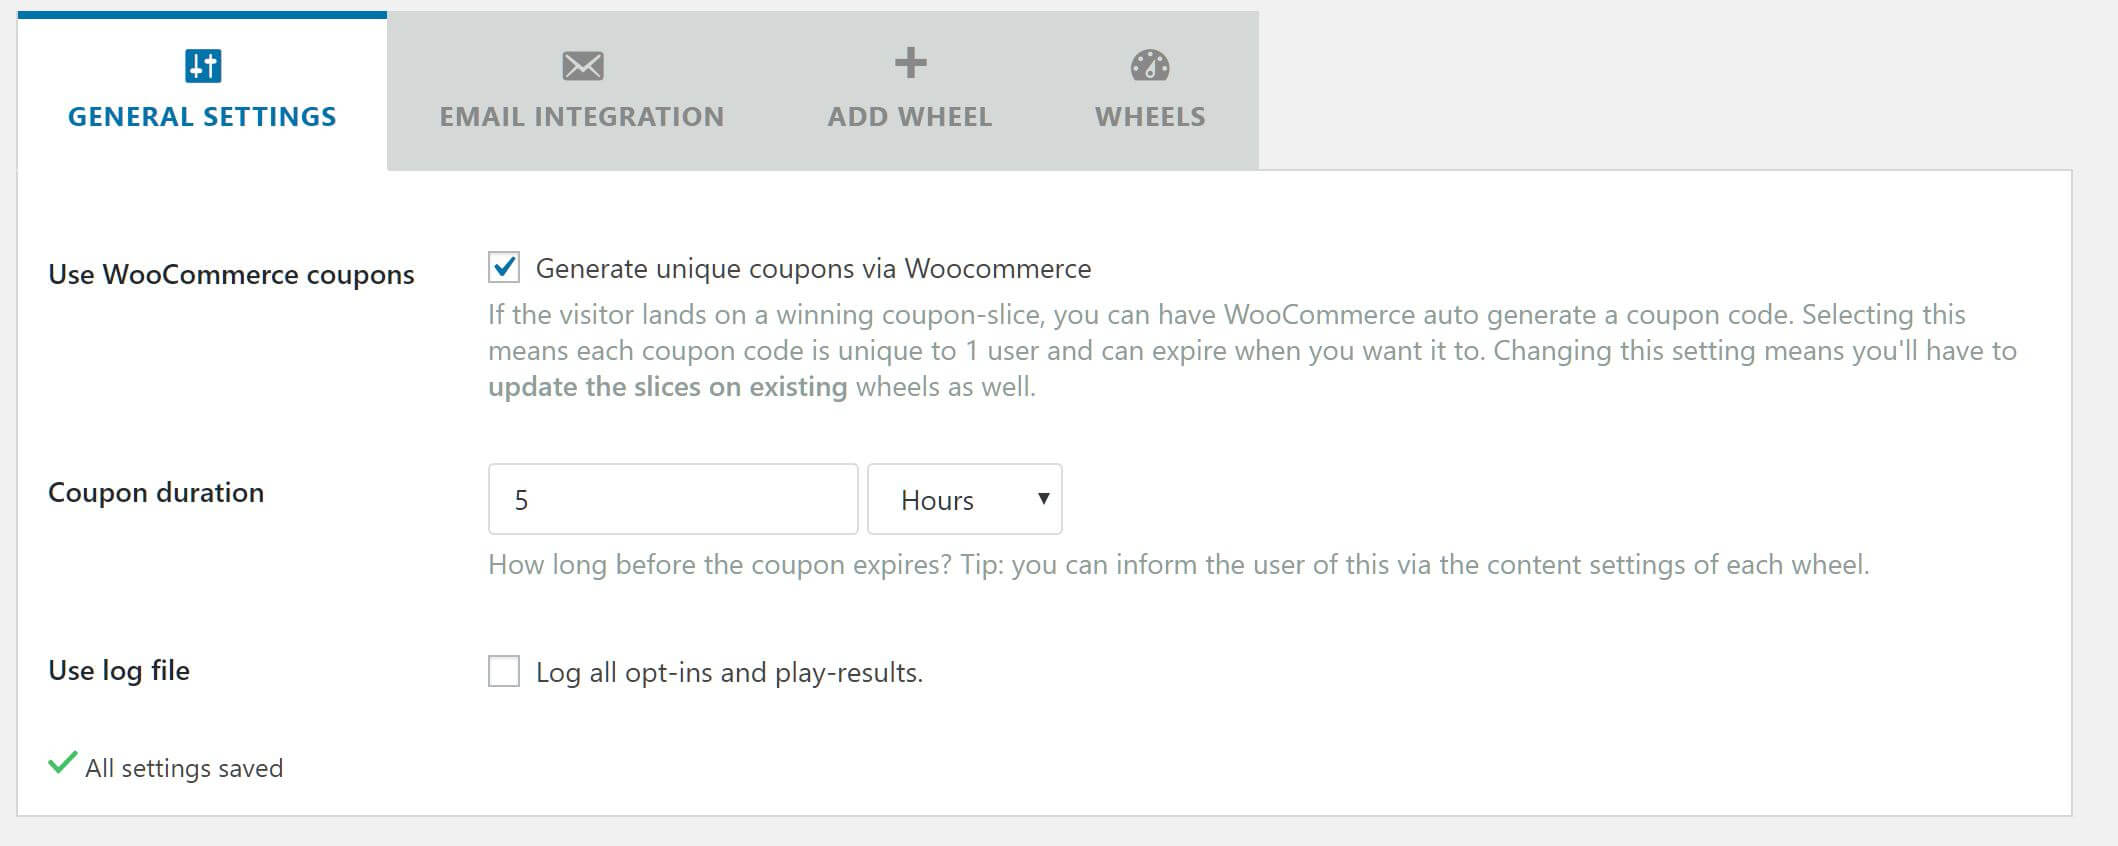 WP Optin Wheel: Gamified optin tool for WooCommerce & WordPress with spin the wheel game. | Prosyscom Tech 5